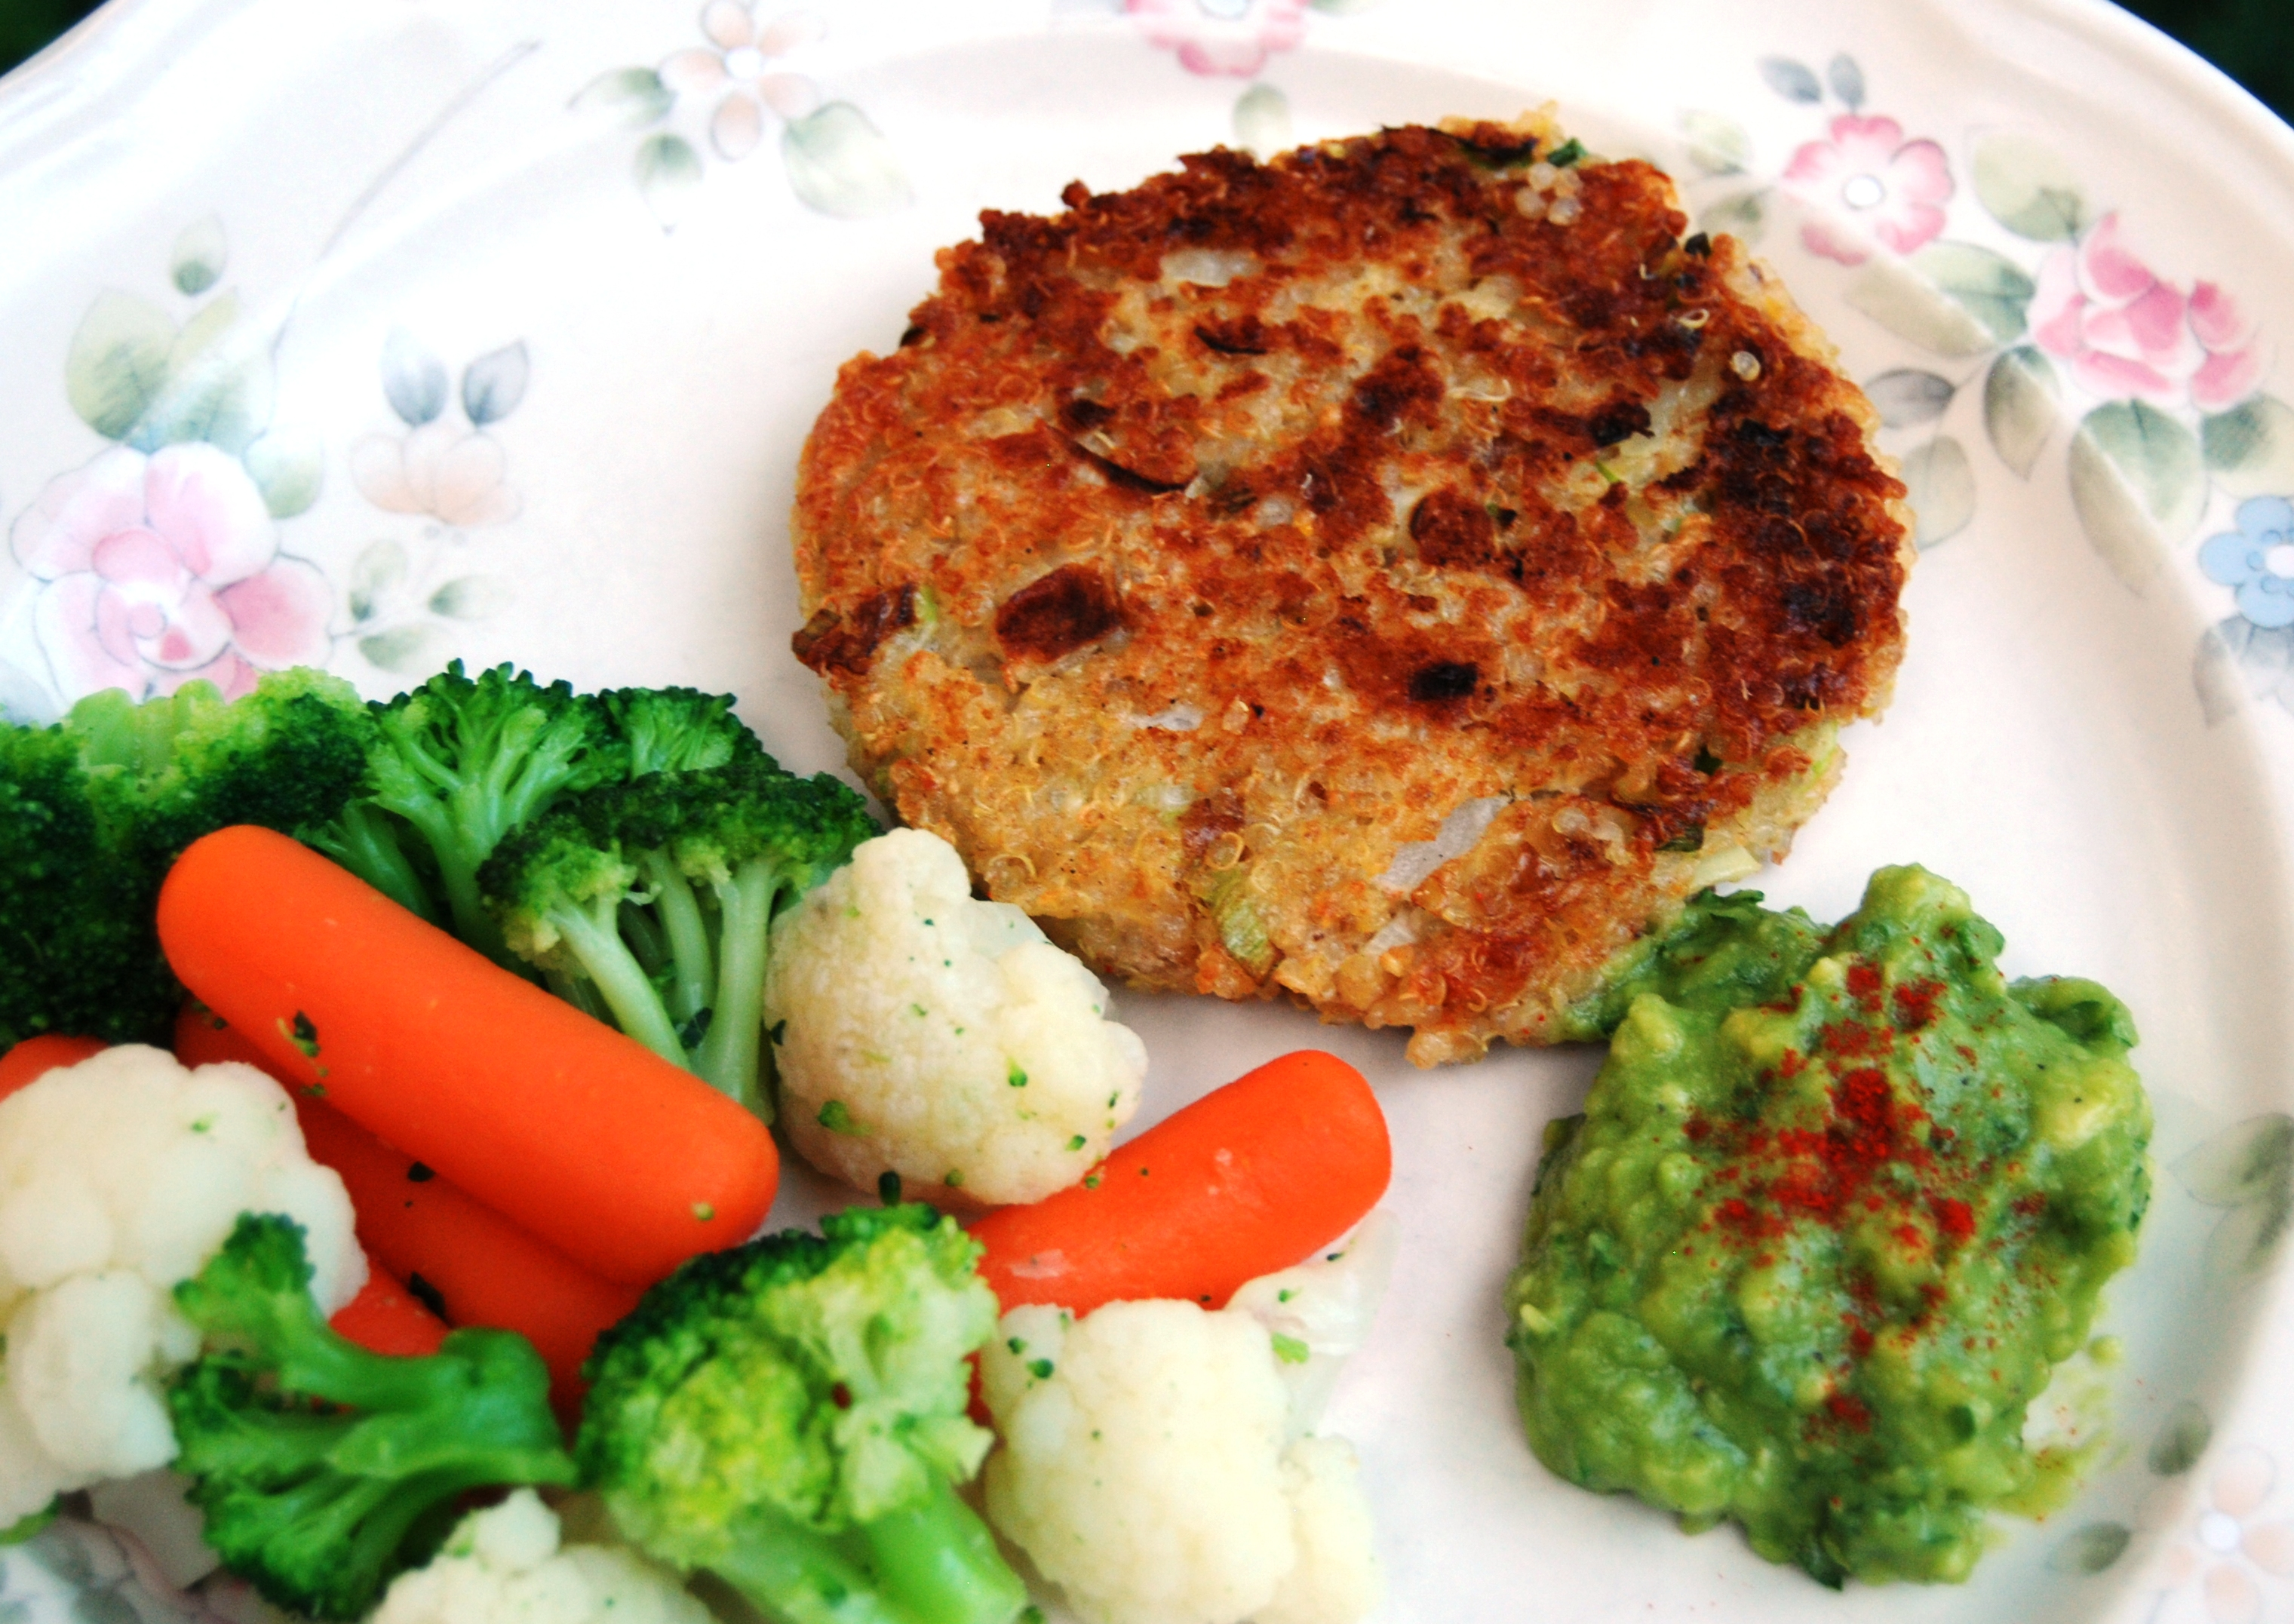 Little Quinoa Patties with Orange Avocado Sauce